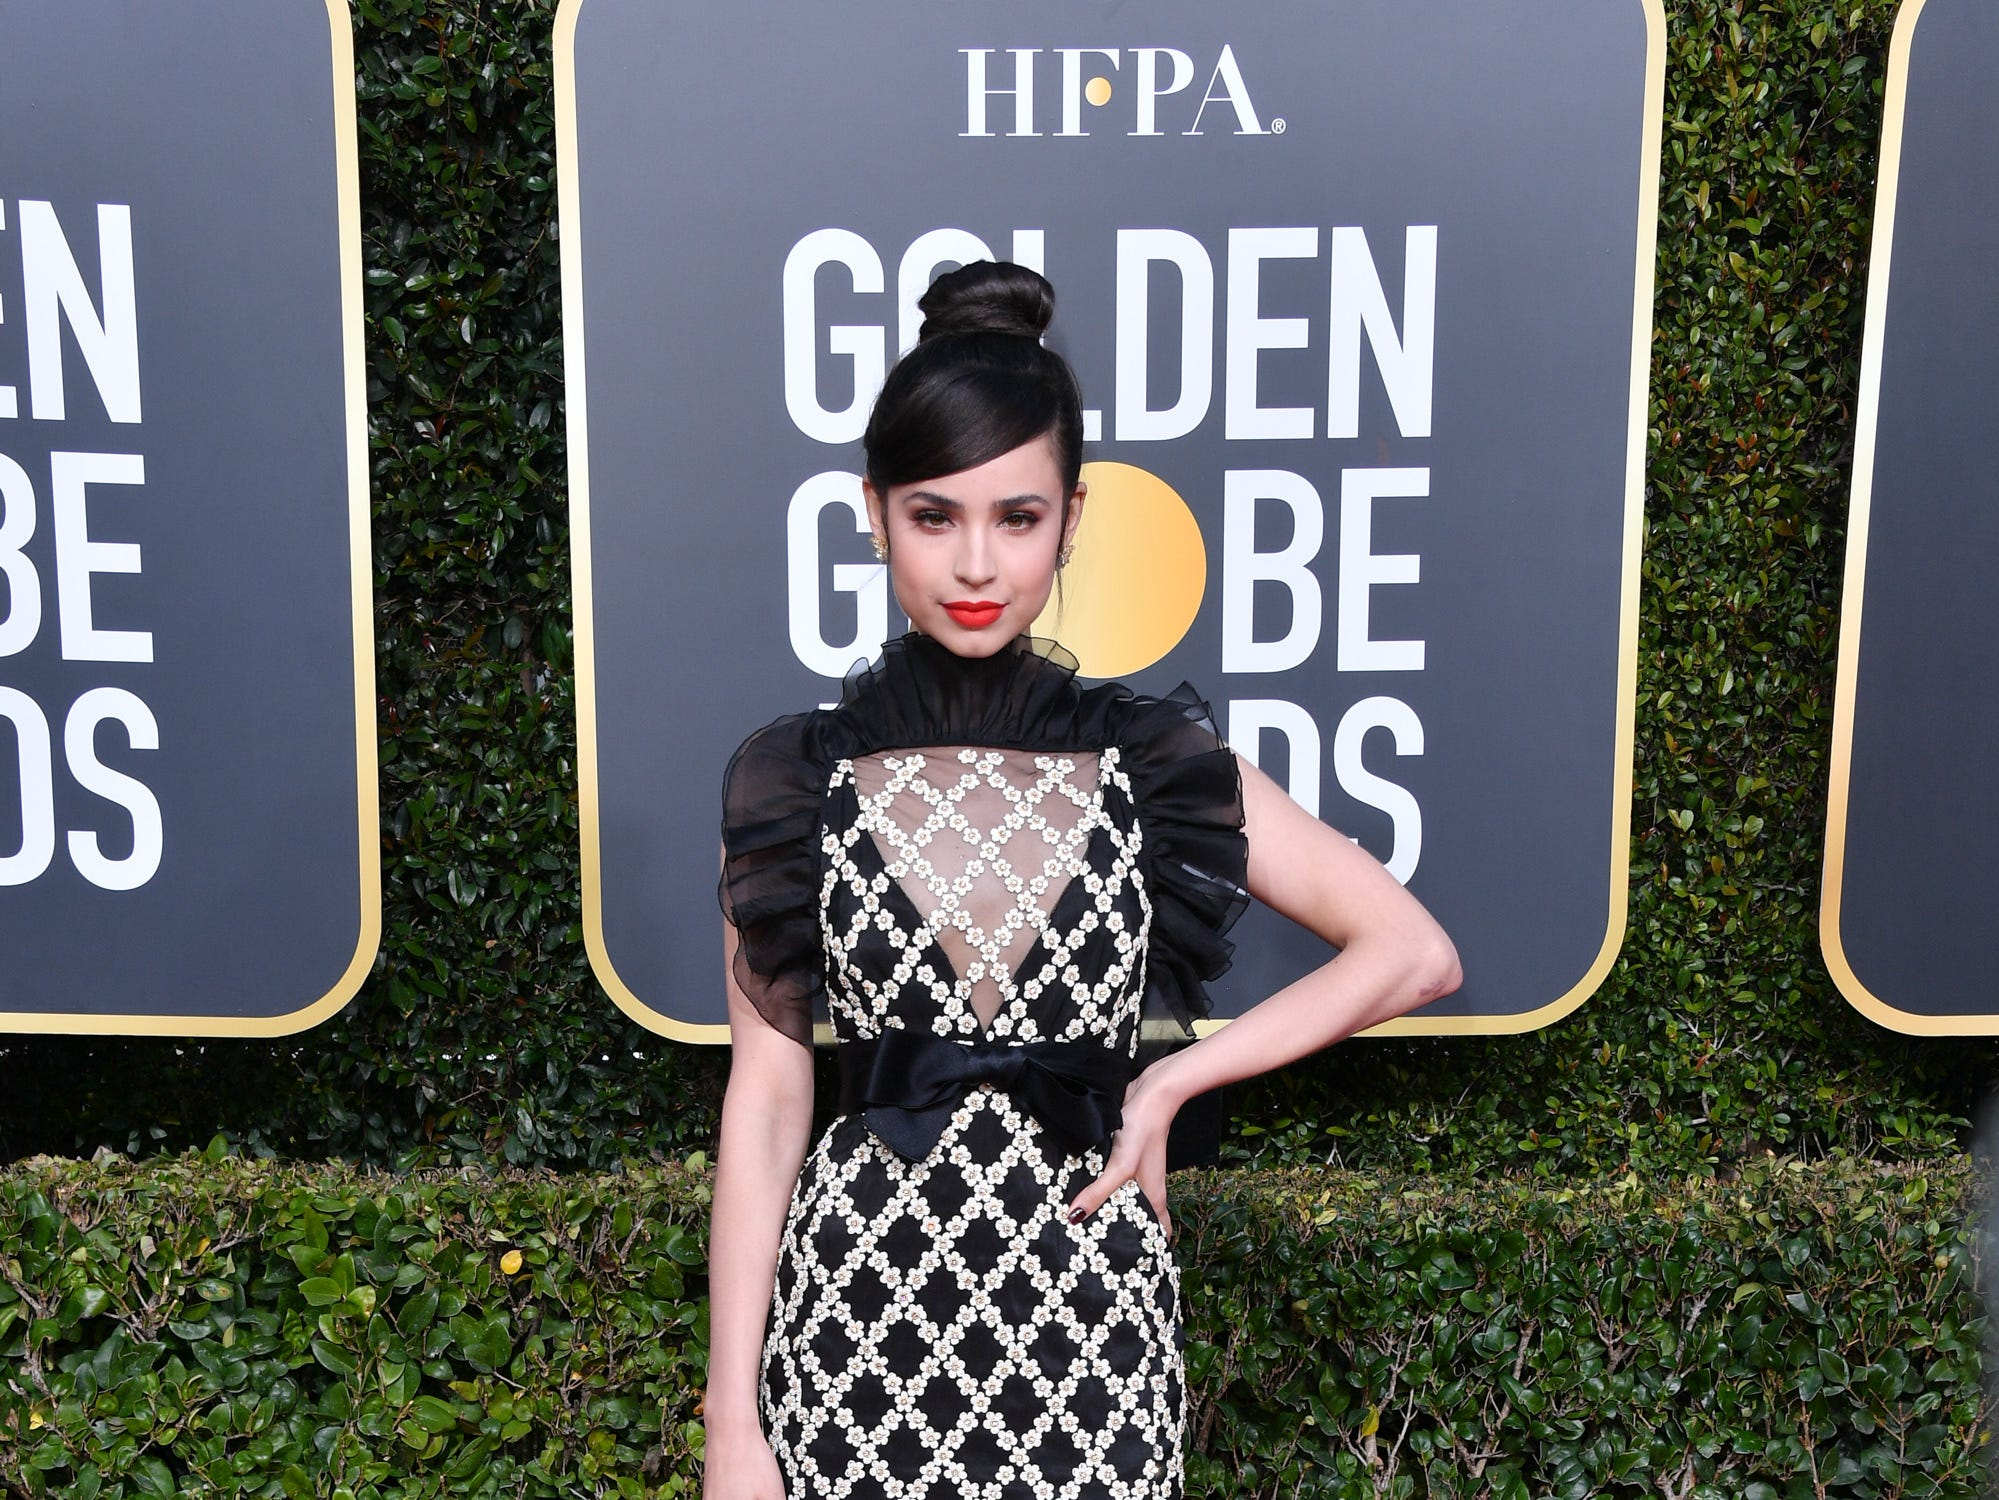 BEVERLY HILLS, CALIFORNIA - JANUARY 06: Sofia Carson attends the 76th Annual Golden Globe Awards held at The Beverly Hilton Hotel on January 06, 2019 in Beverly Hills, California. (Photo by George Pimentel/WireImage) ORG XMIT: 775268382 ORIG FILE ID: 1090669096